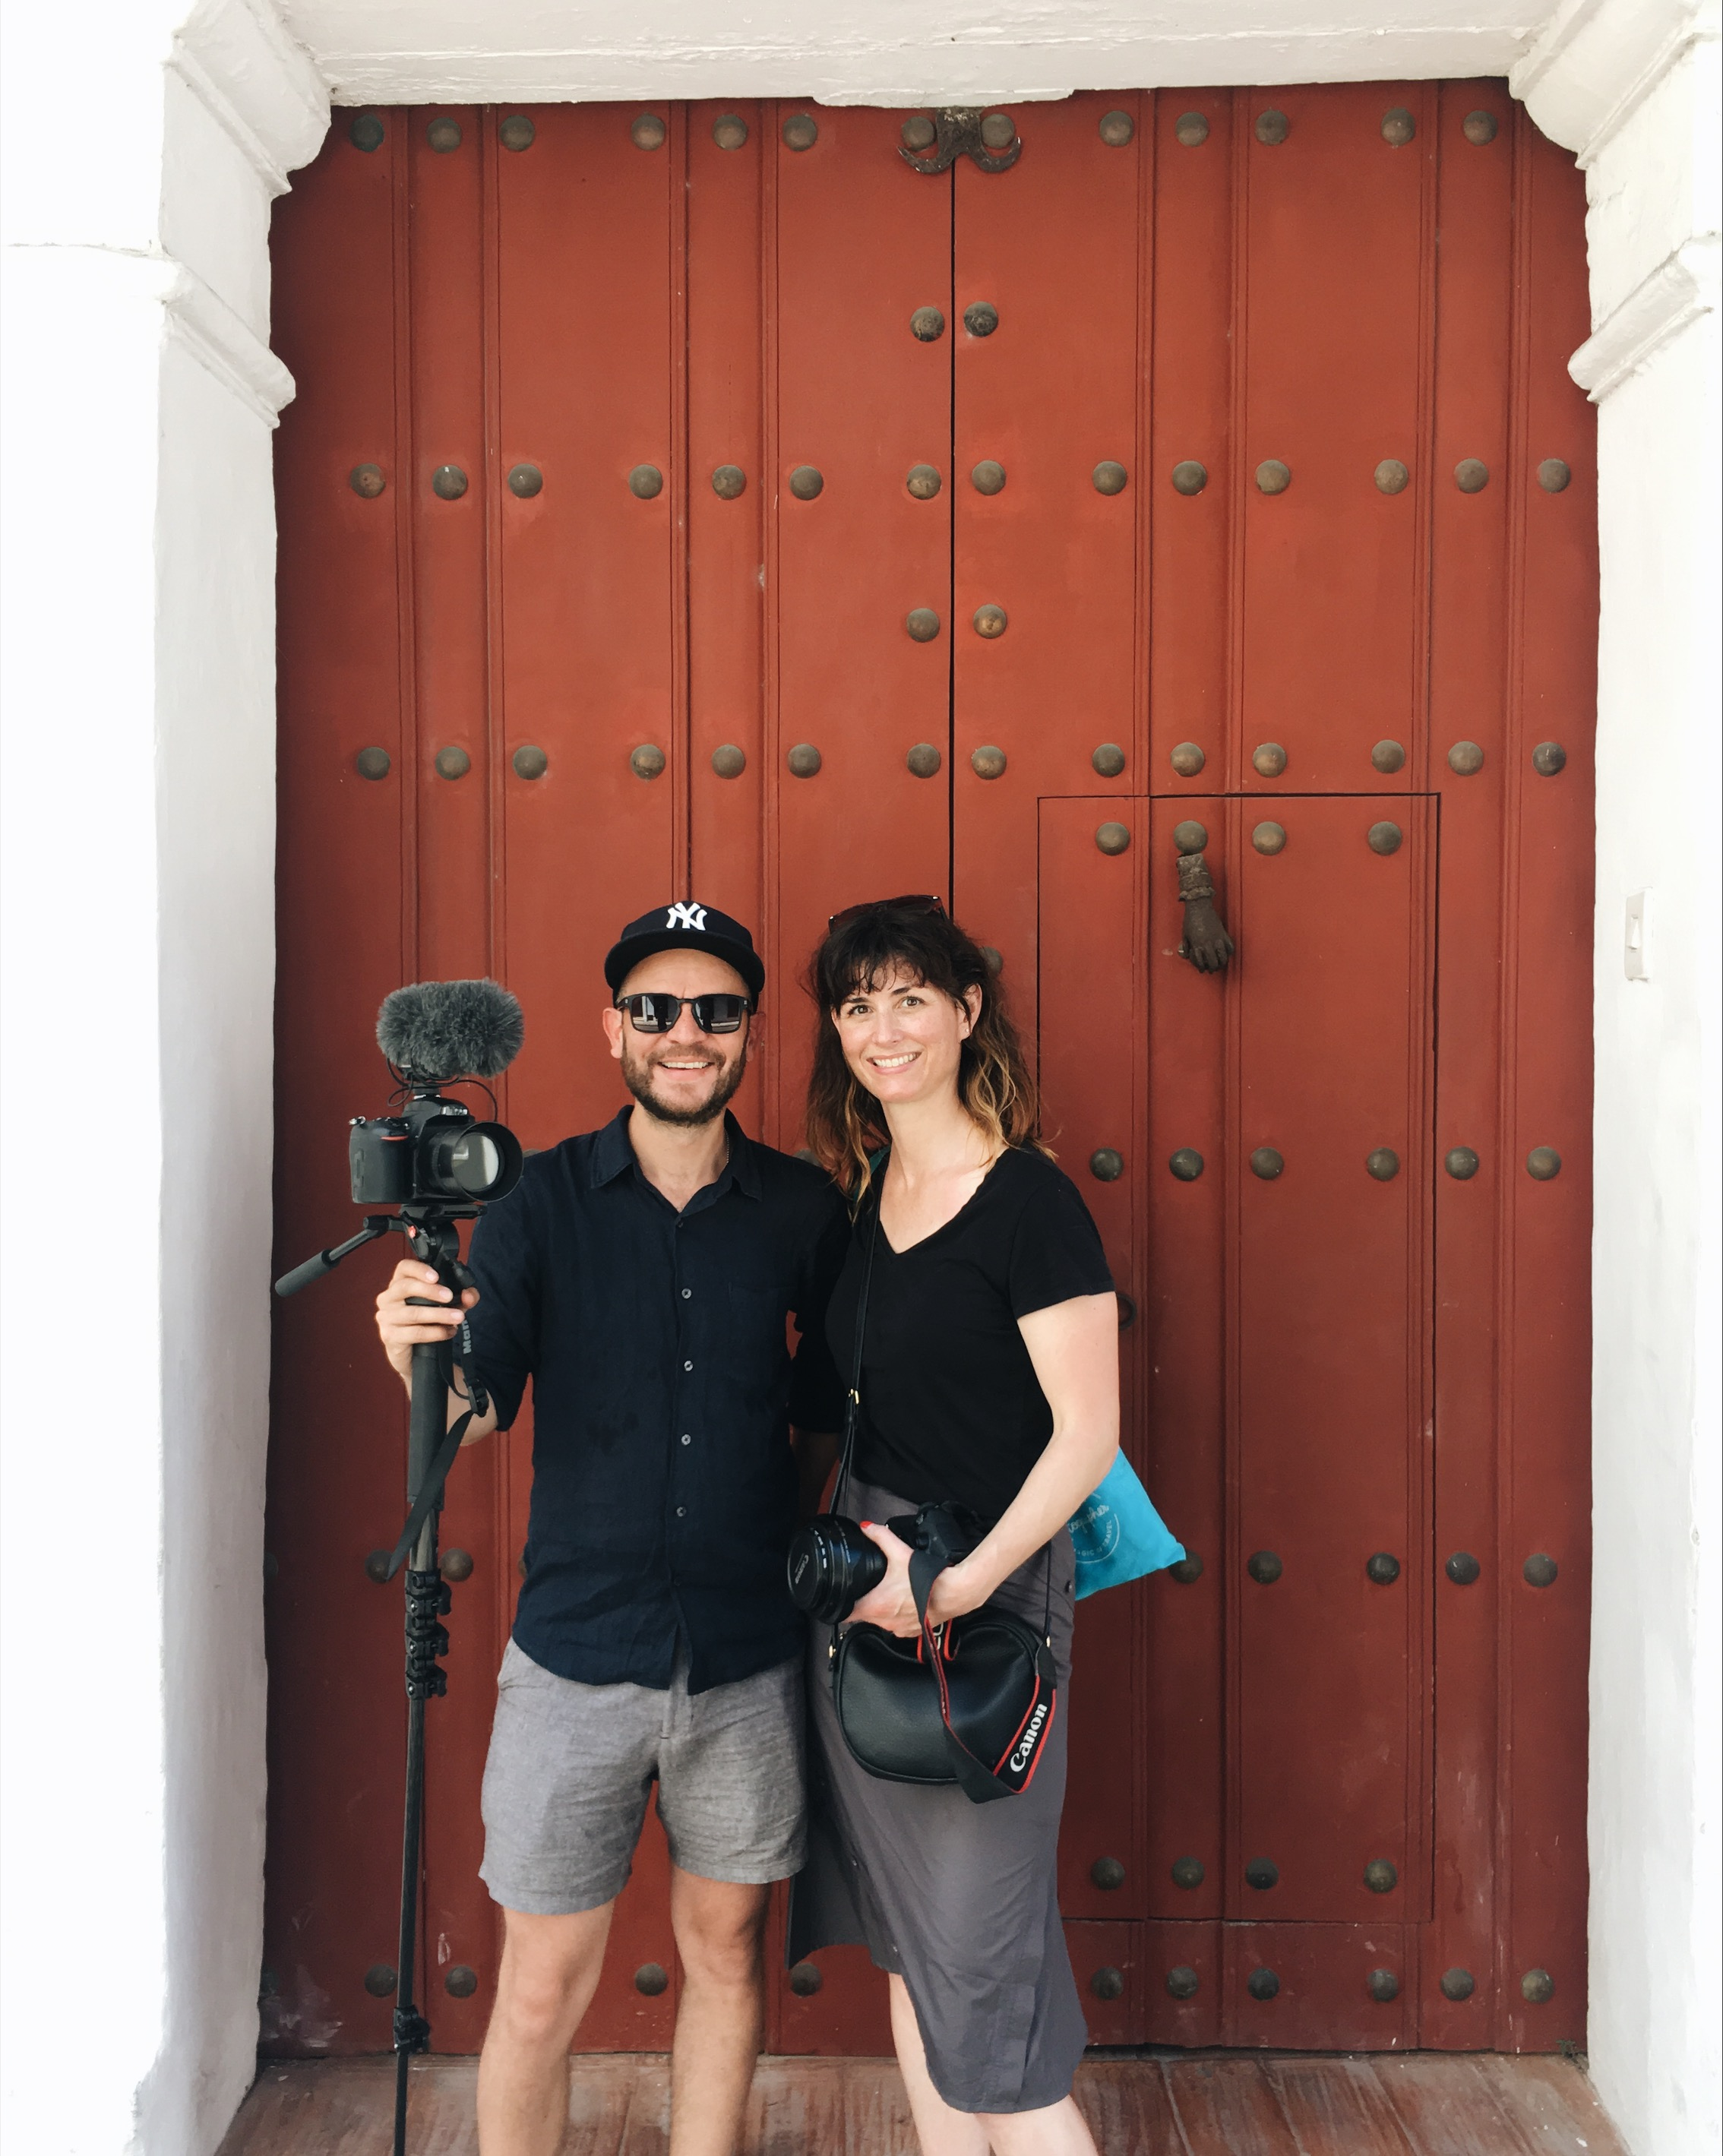 I met Juan Felipe  in Cartagena and joined him on a little photo tour as he captured city footage for a wedding.